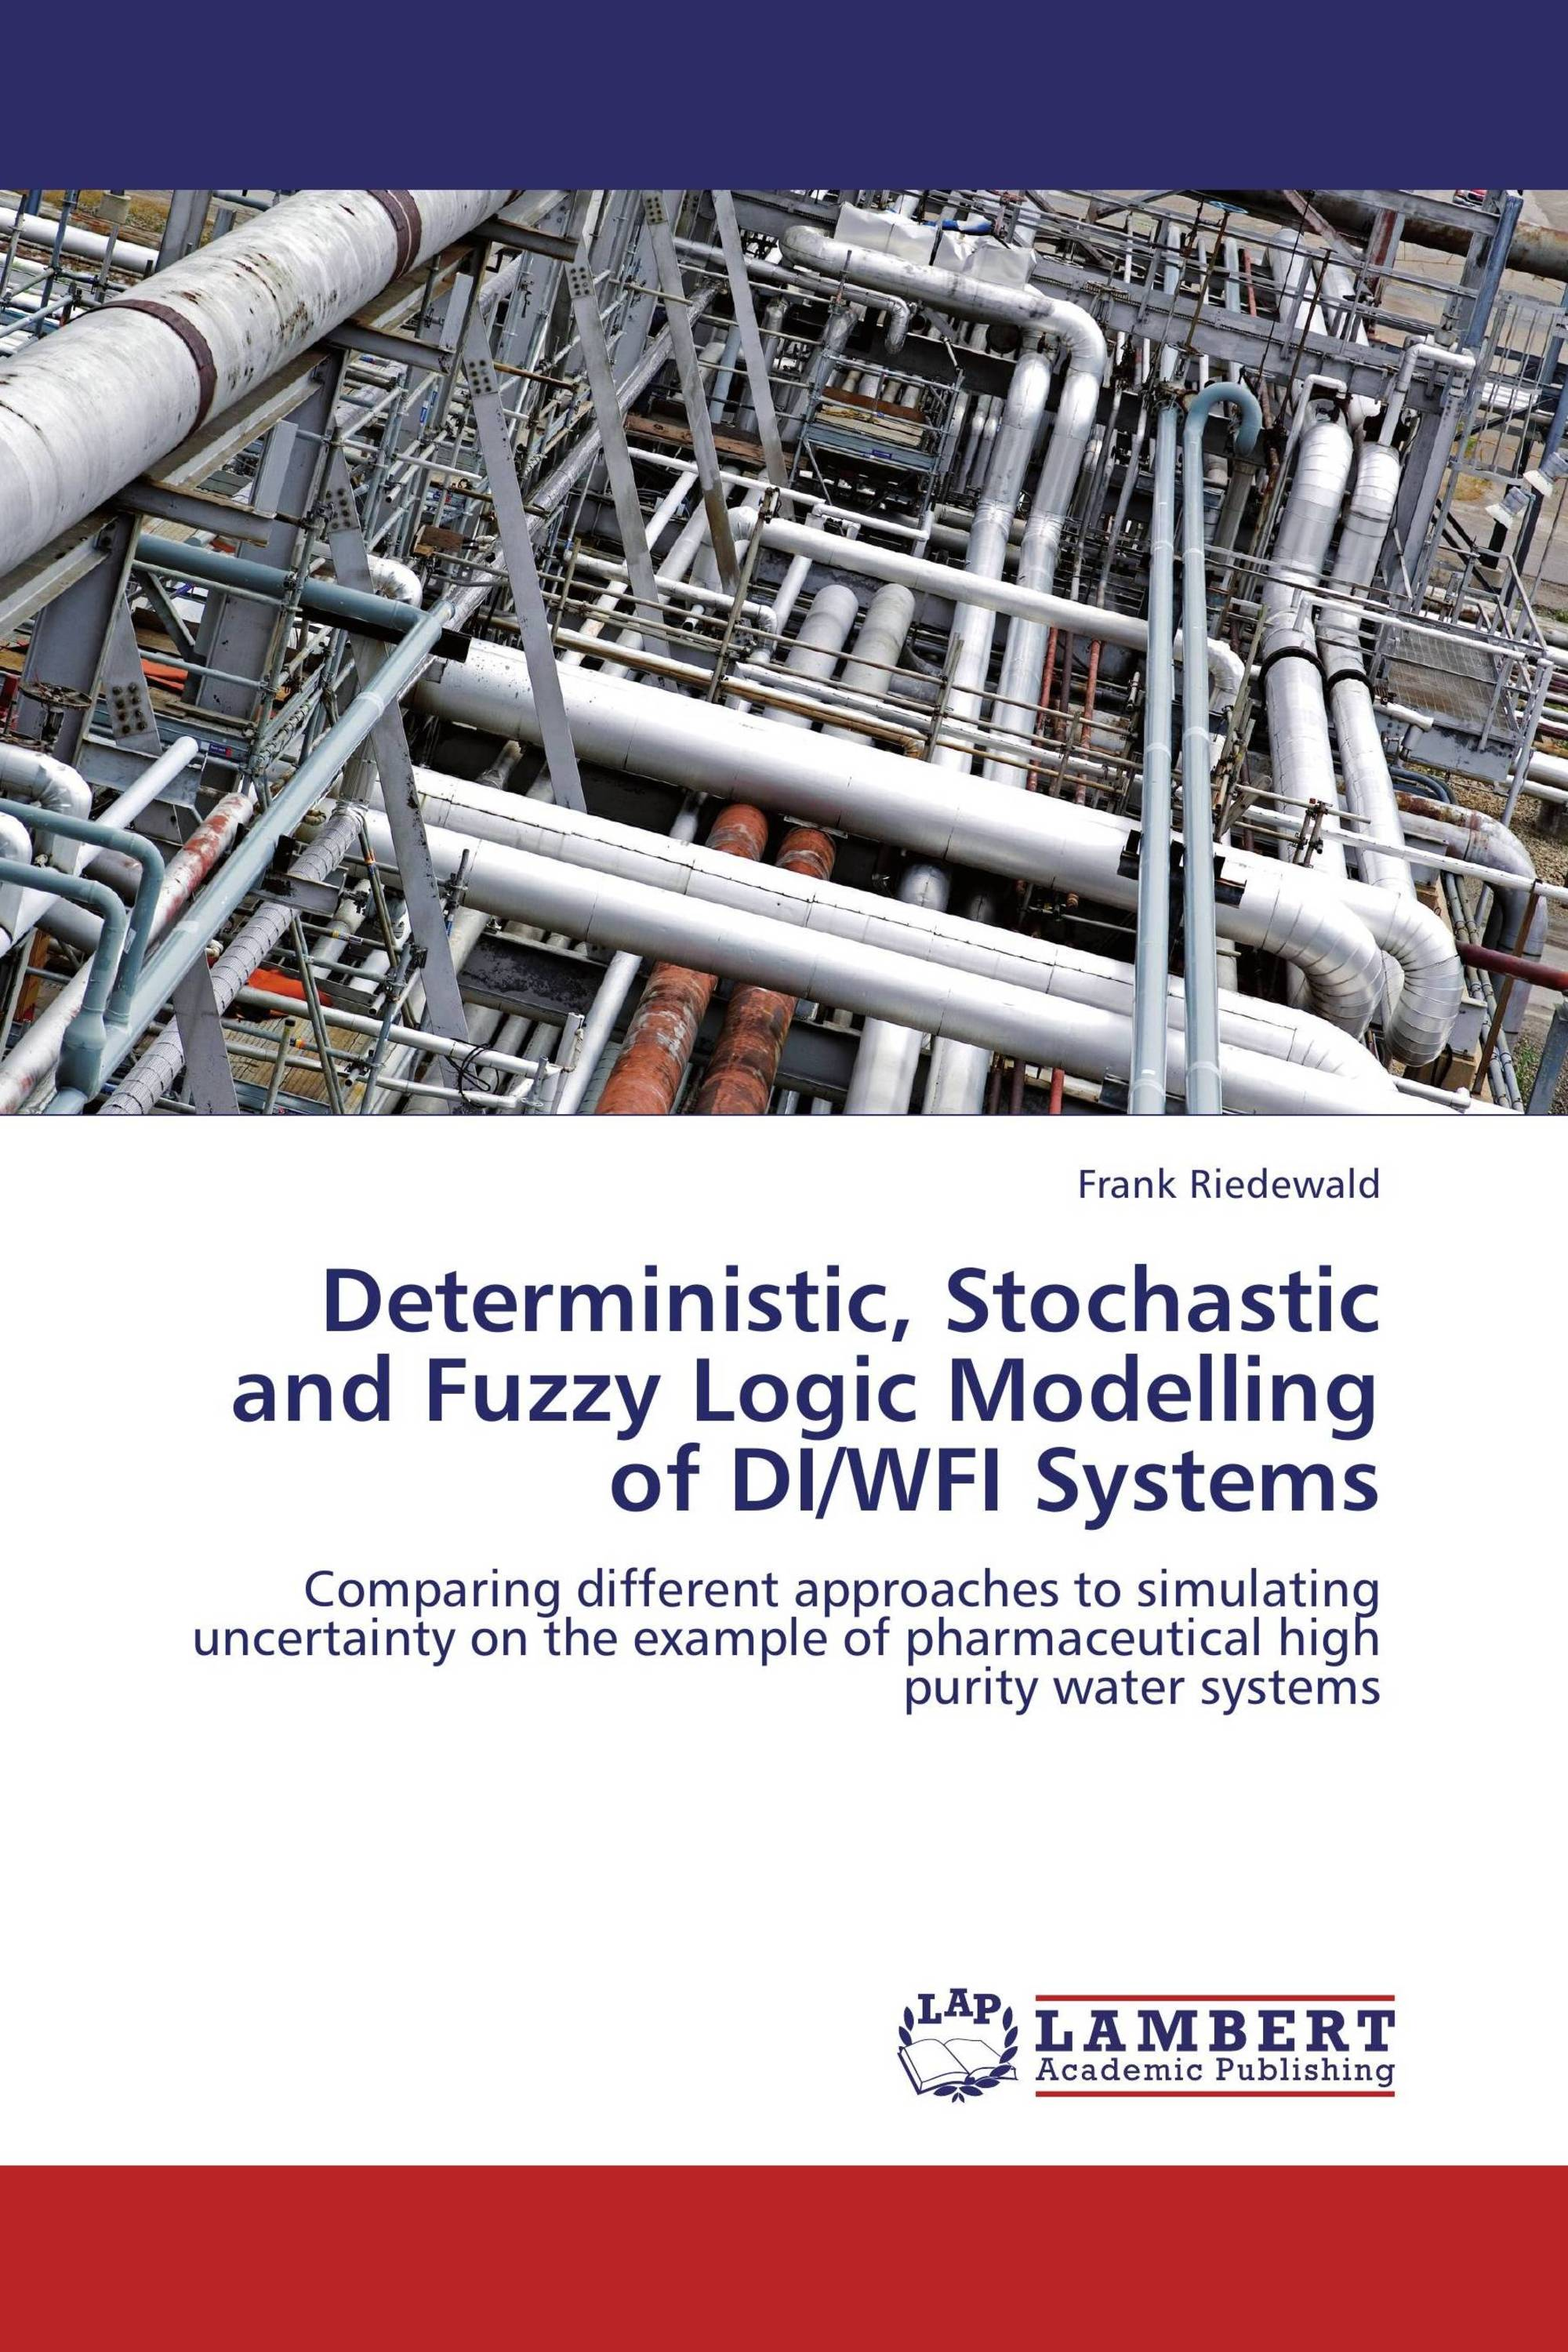 Deterministic, Stochastic and Fuzzy Logic Modelling of DI/WFI